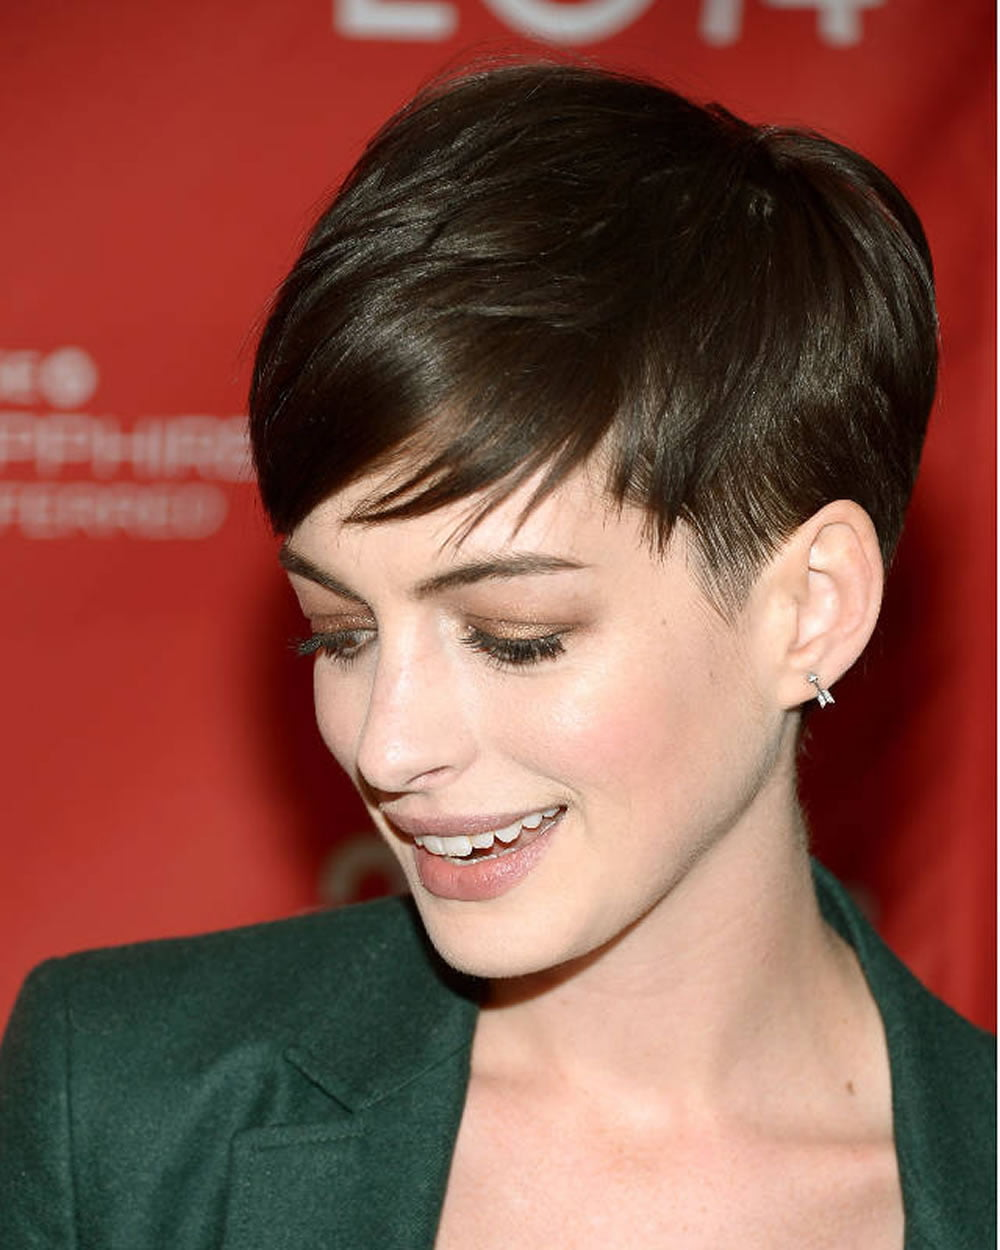 pixie haircut styles pixie haircuts for curly hair 2017 haircuts models ideas 1077